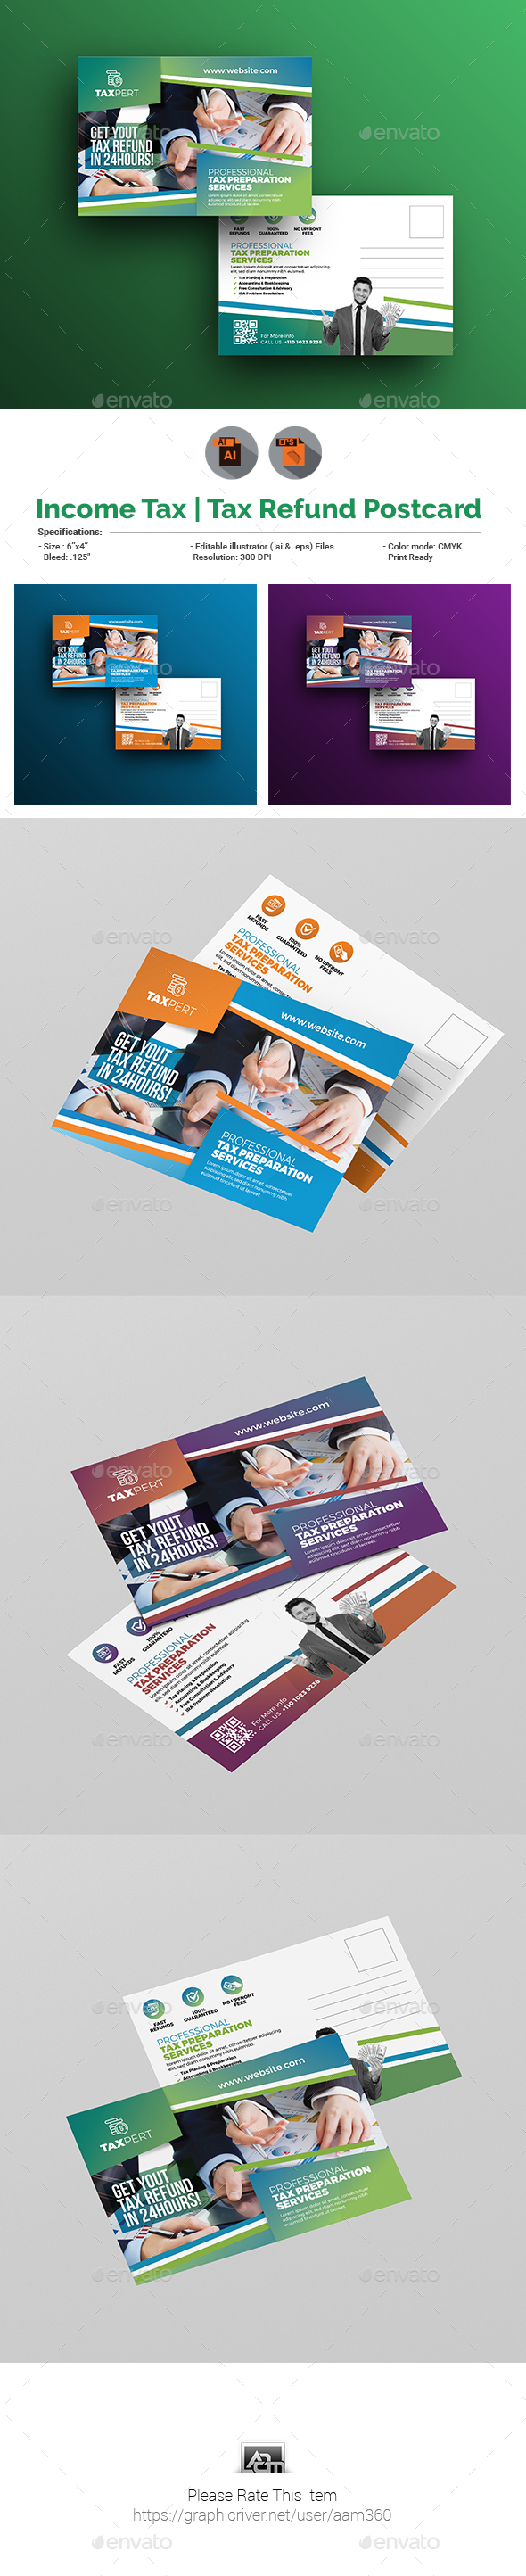 Income Tax/Tax Refund Postcard Template - Cards & Invites Print Templates